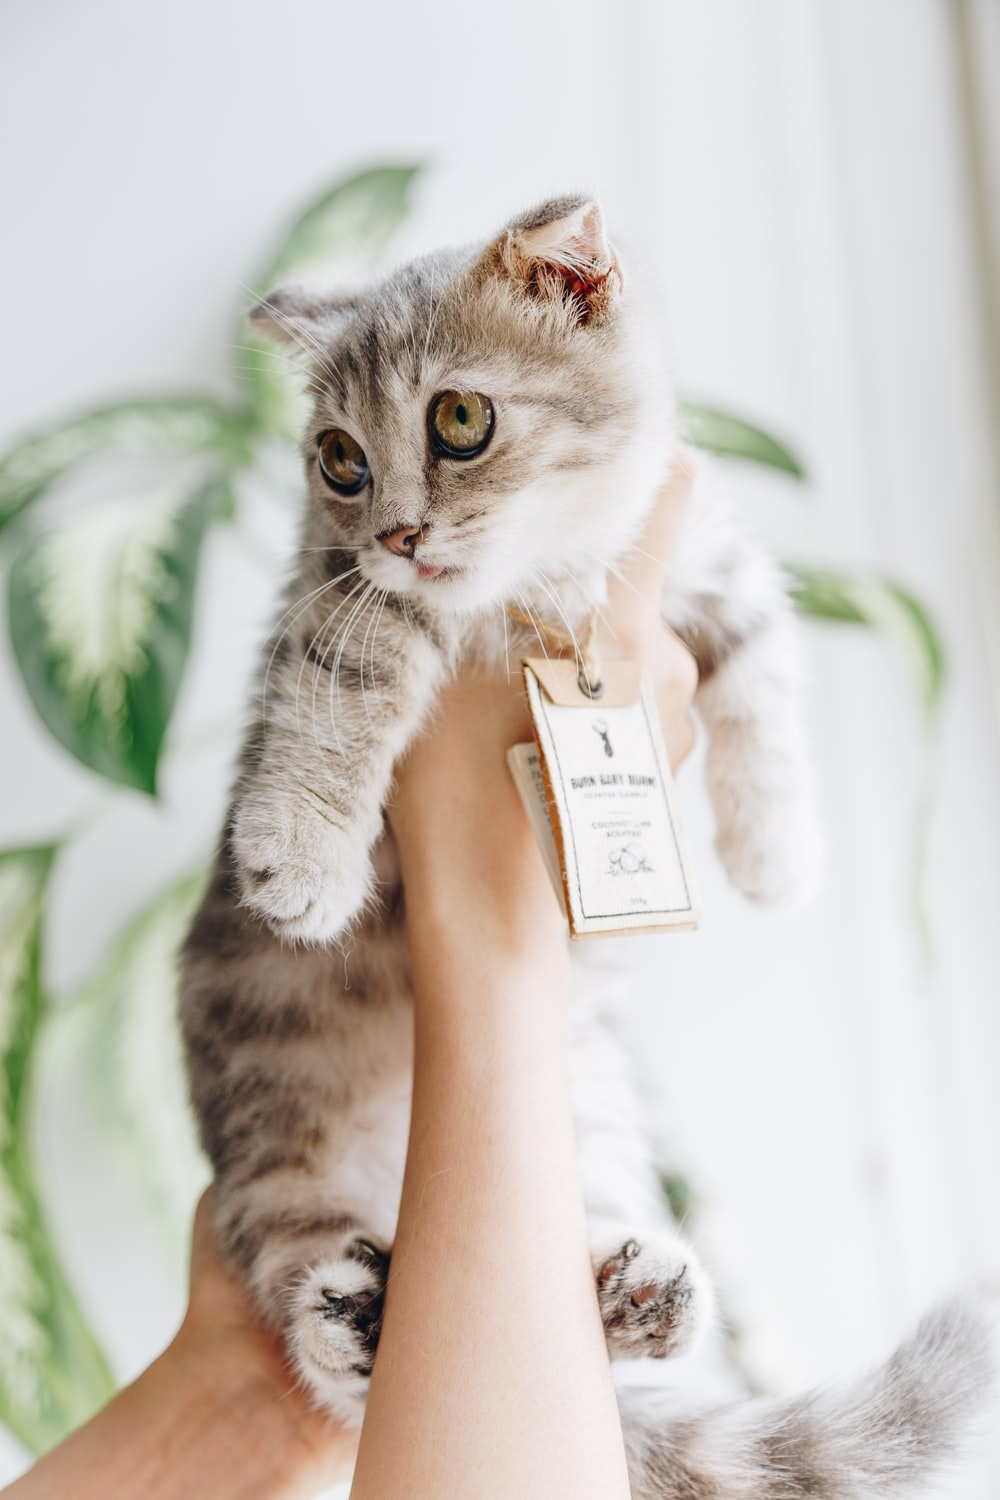 person holding cat